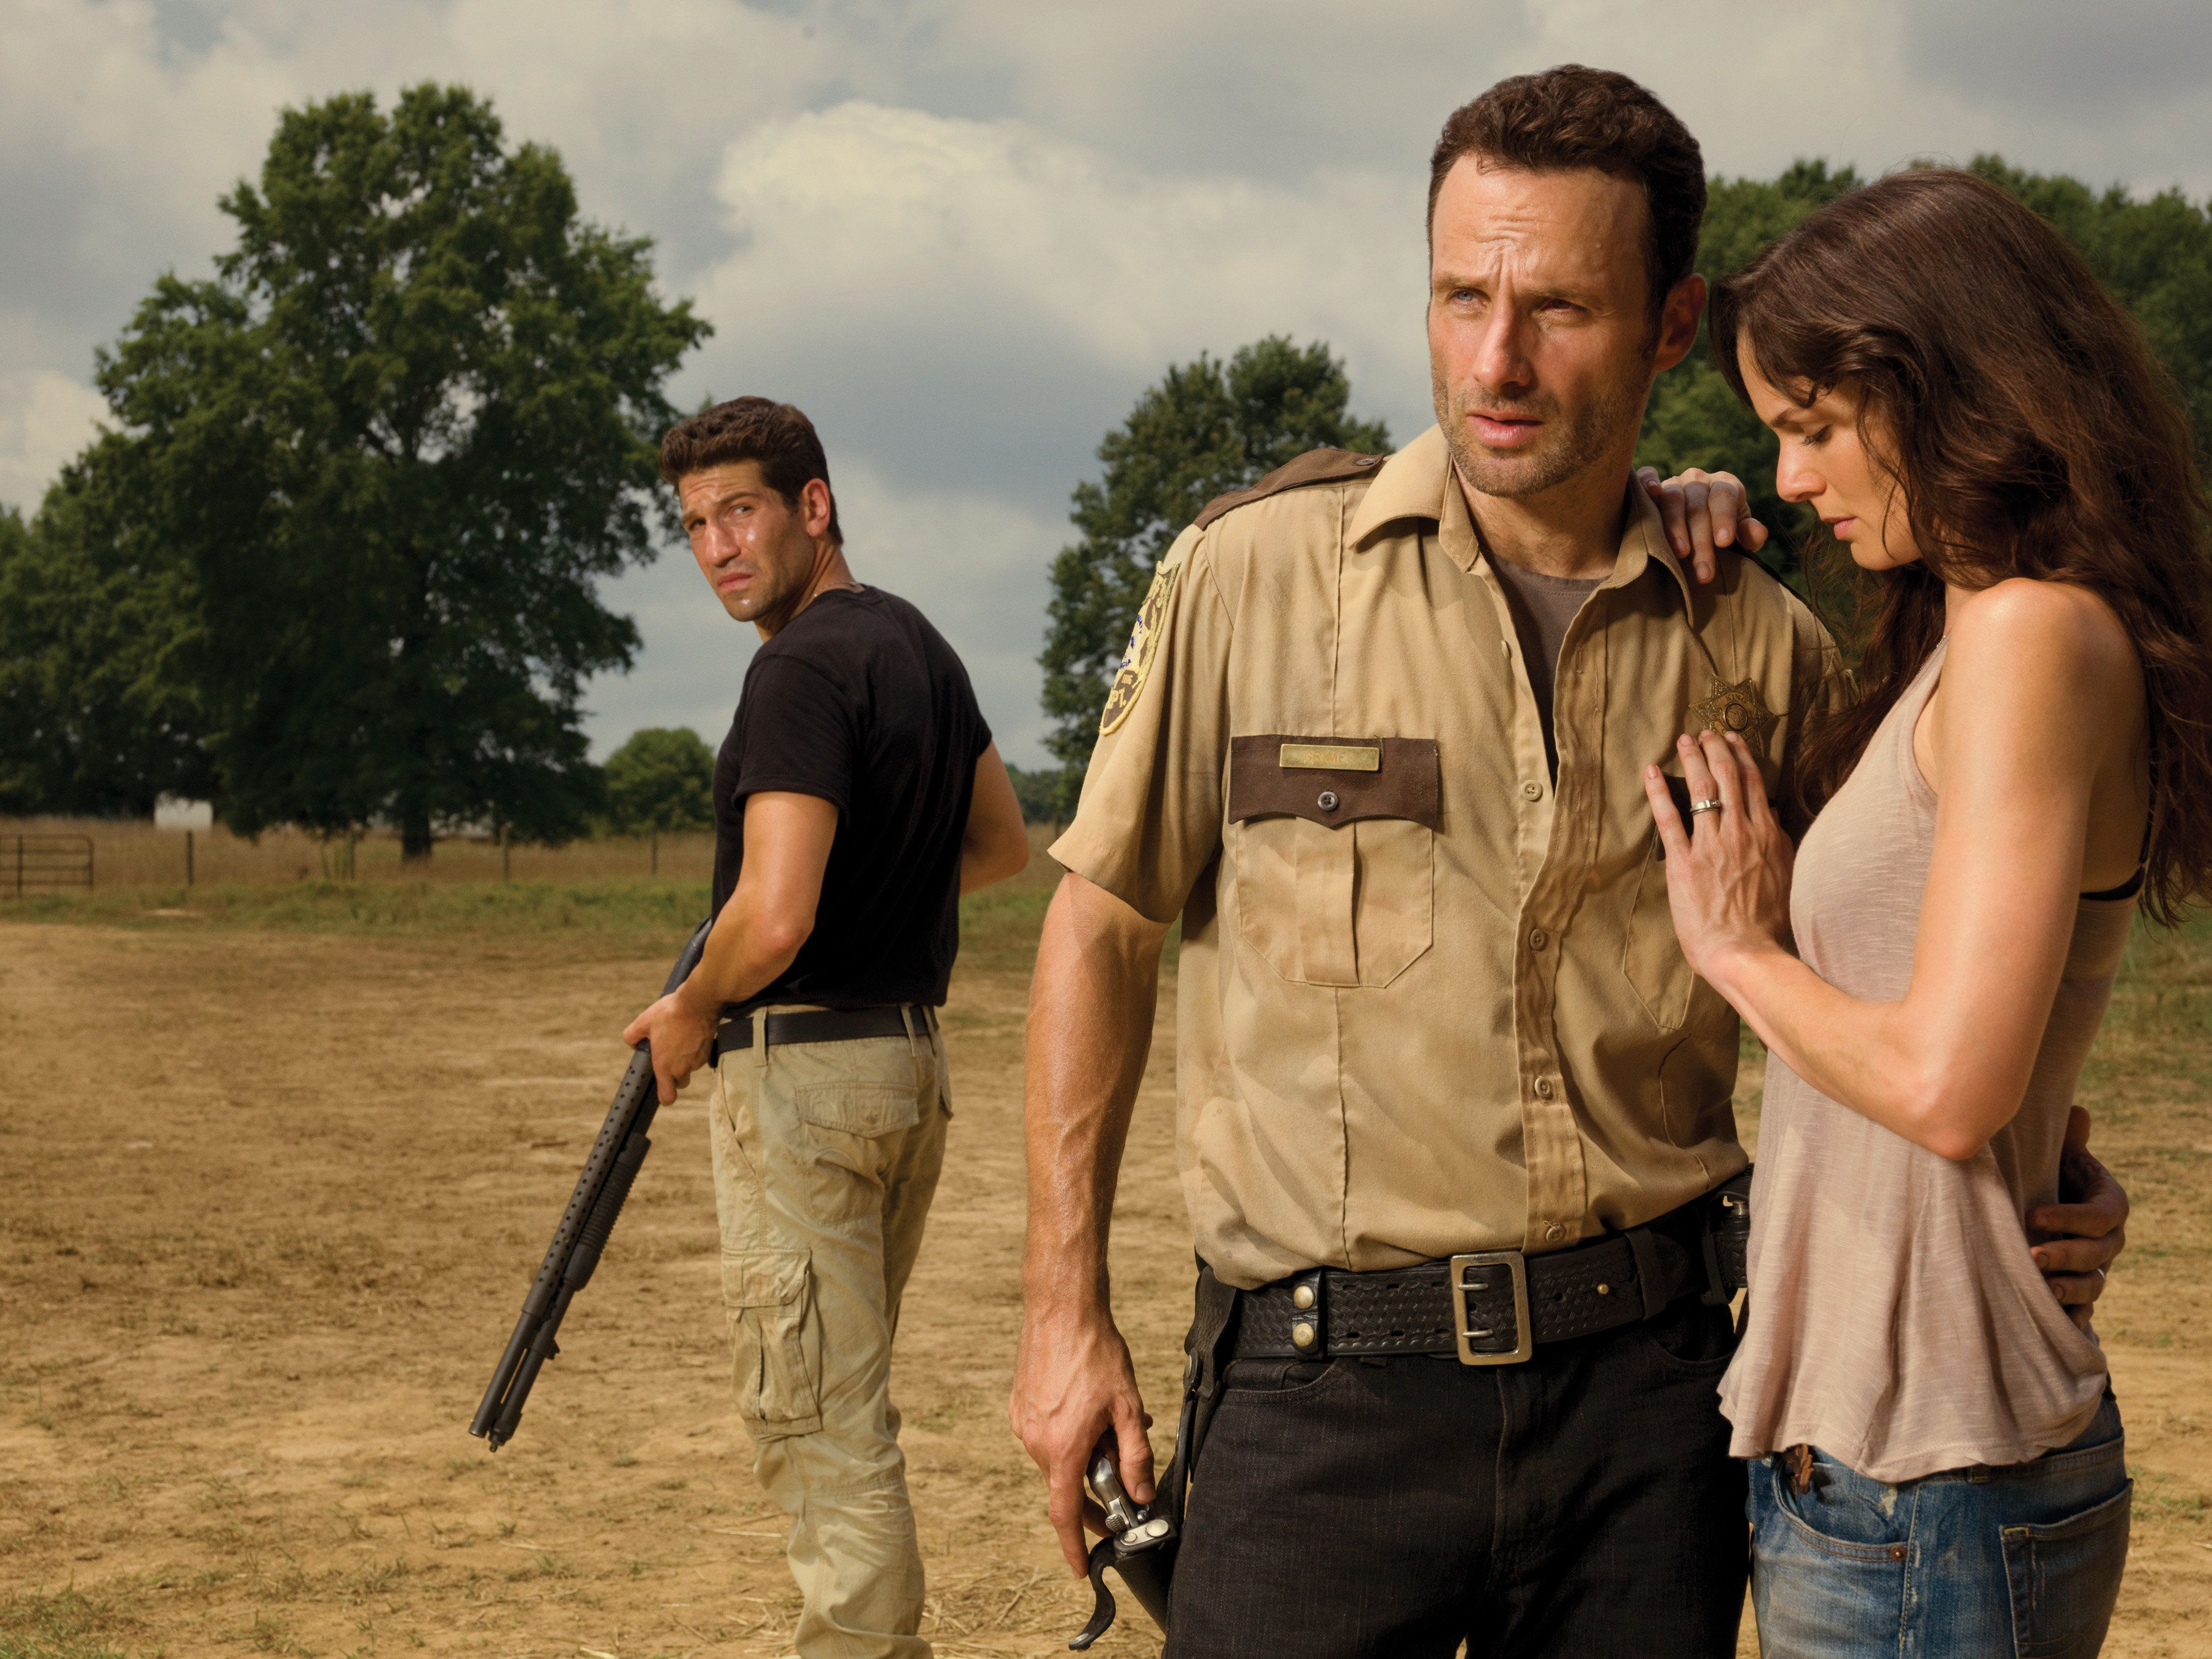 Shane Walsh (Jon Bernthal), Rick Grimes (Andrew Lincoln) and Lori Grimes (Sarah Wayne Callies) - The Walking Dead _ Season 2 _ Gallery - Photo Credit: Matthew Welch/AMC